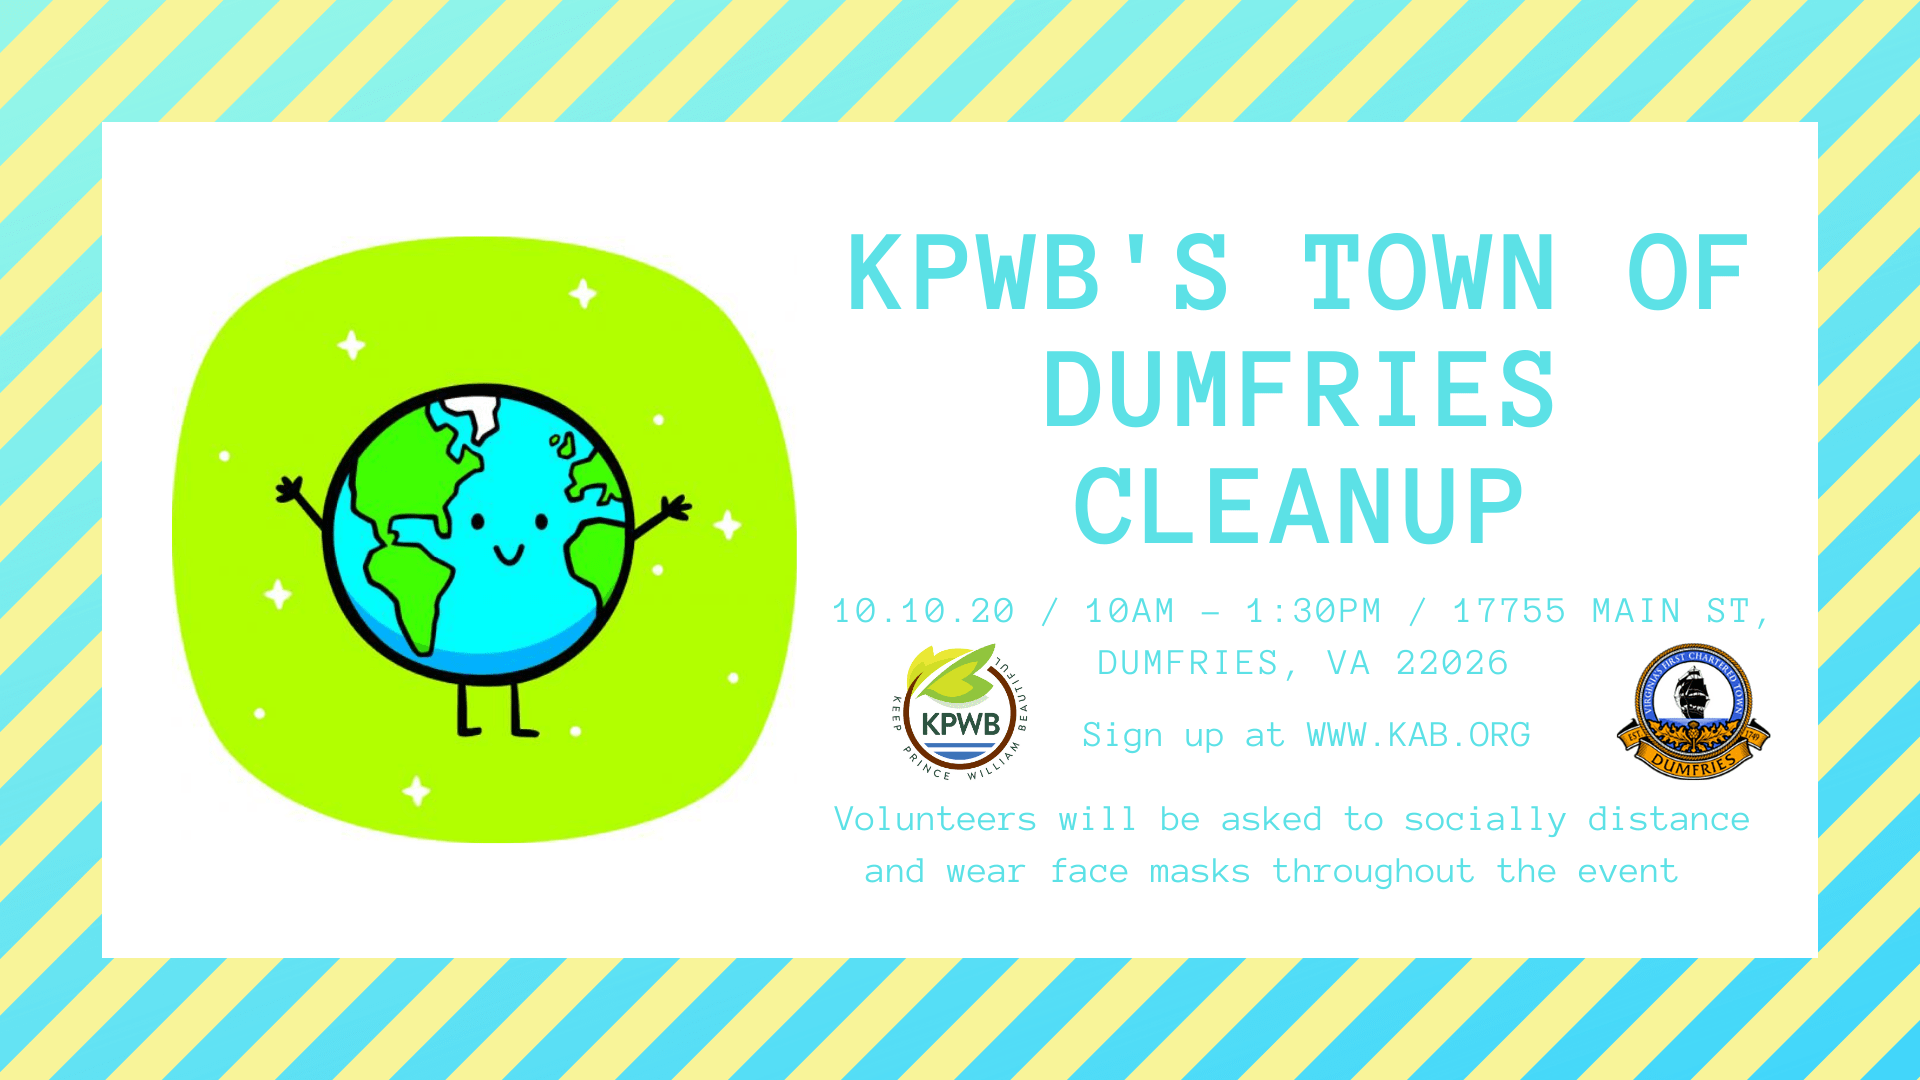 Dumfries Cleanup - Events